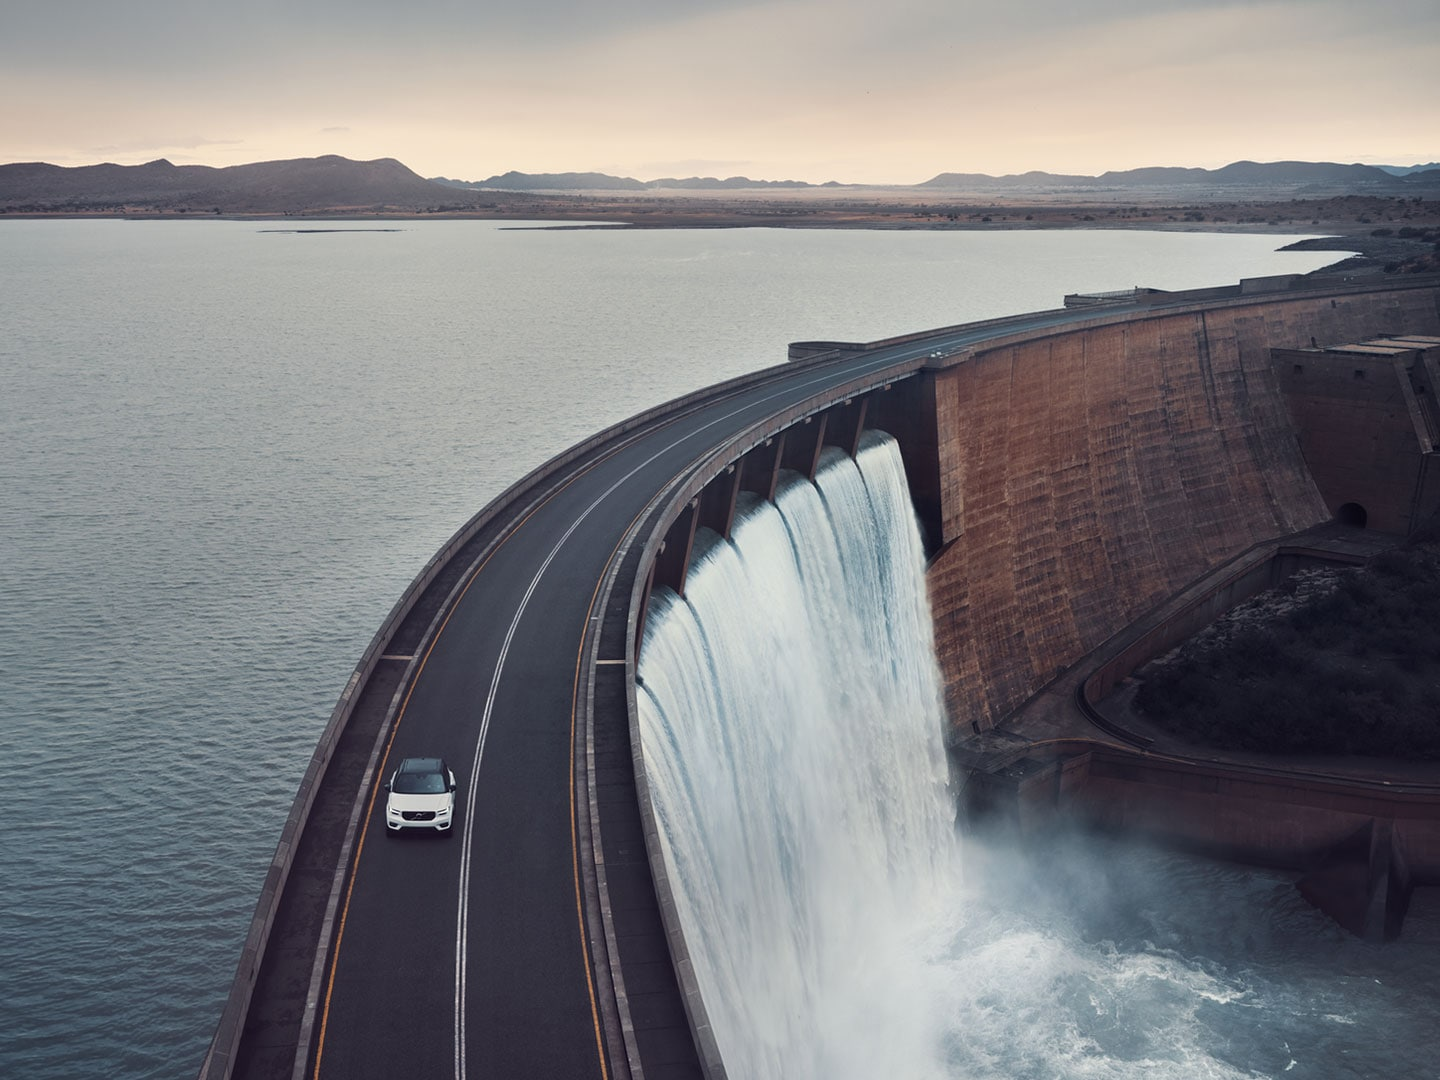 A Volvo SUV driving on a road across a dam holding a reservoir.